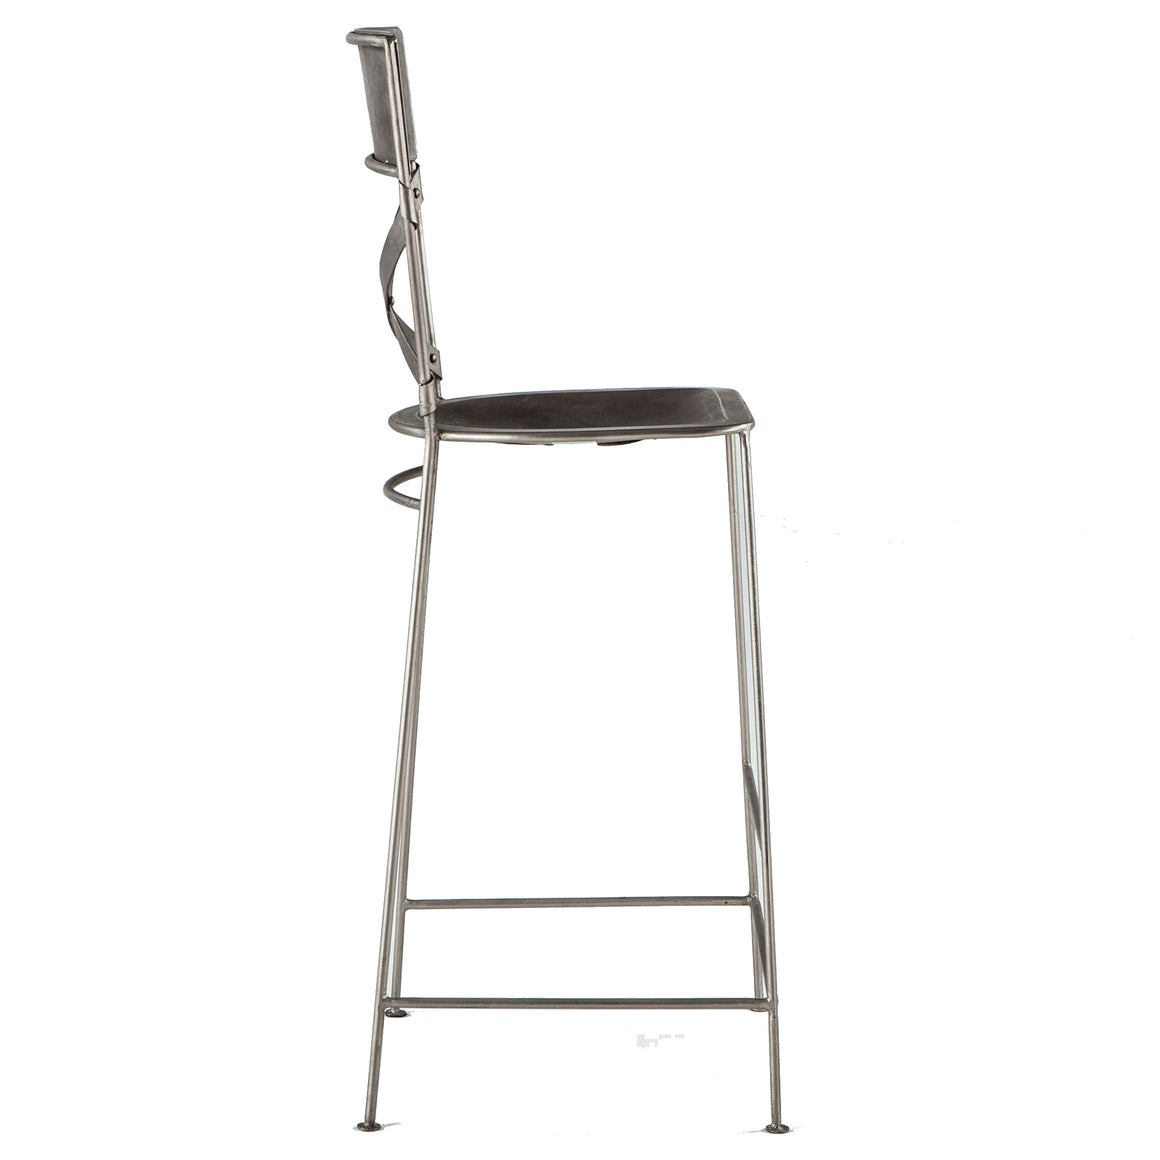 Artezia Antique Nickel Bar Stools